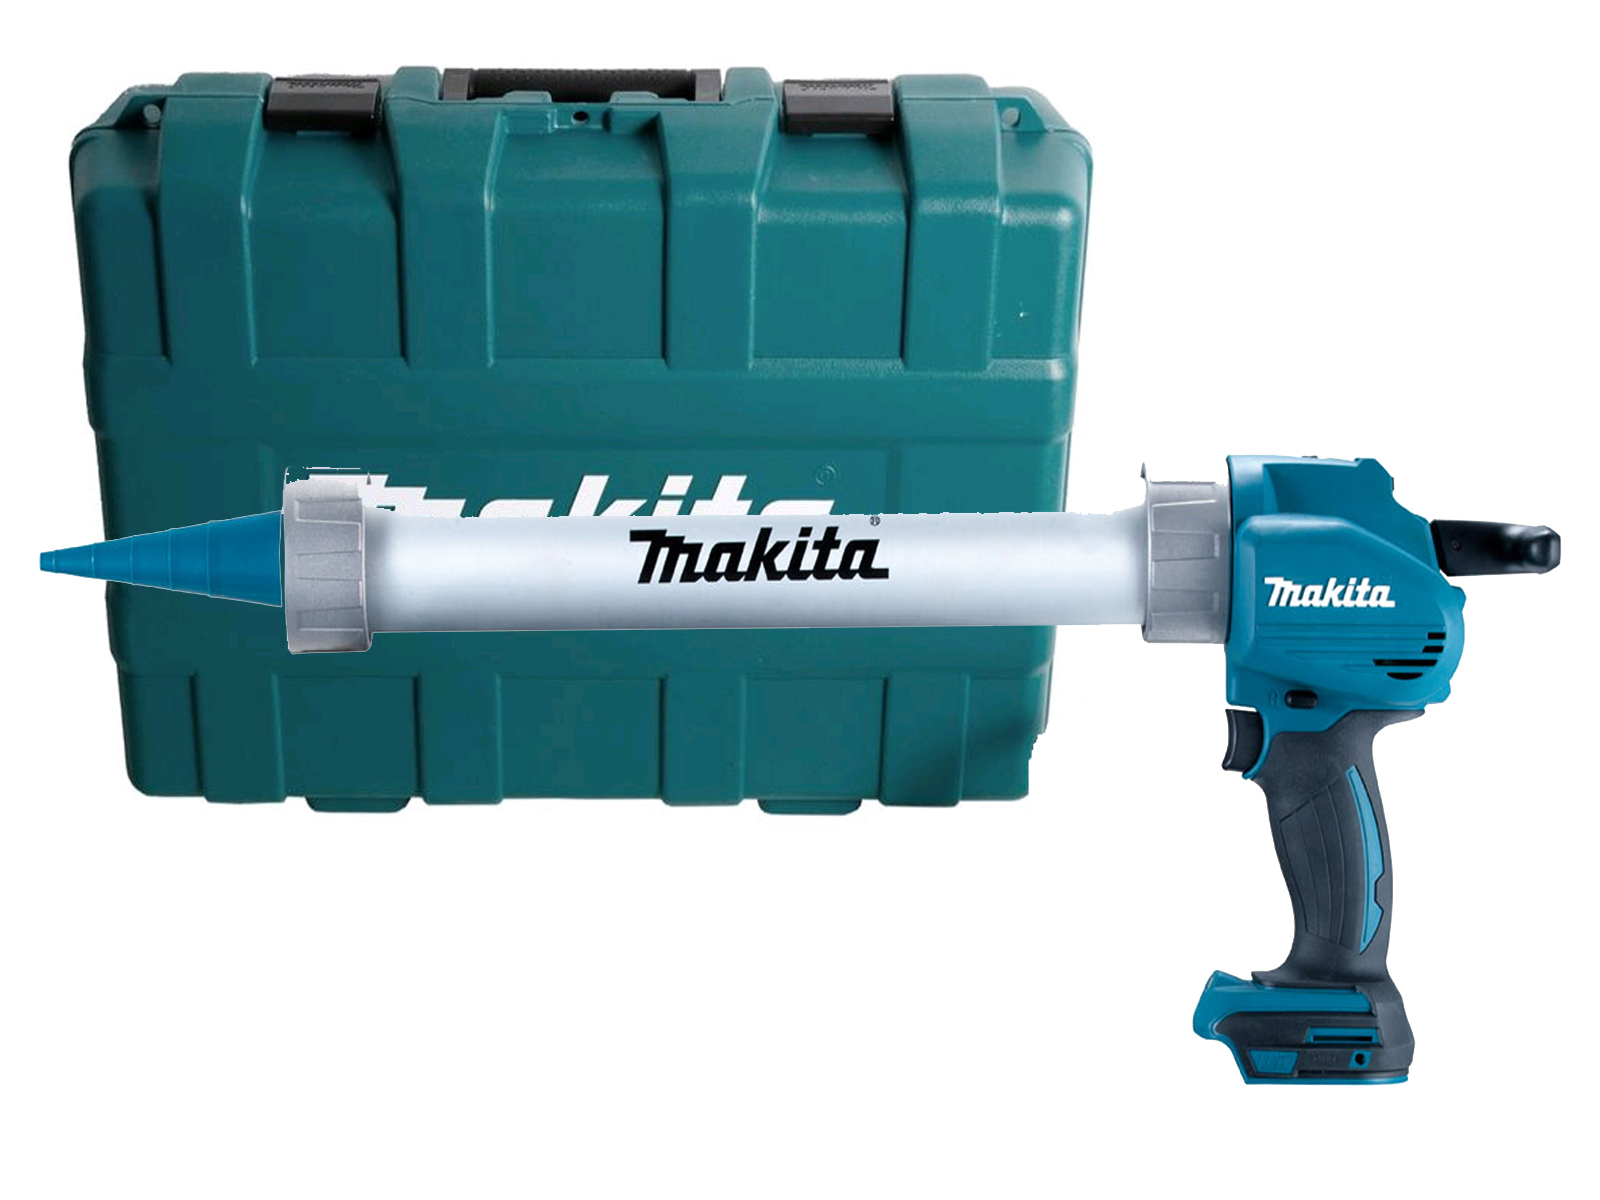 MAKITA 18V 600ML ALUMINIUM CAULKING GUN & CASE - DCG180 - BODY ONLY